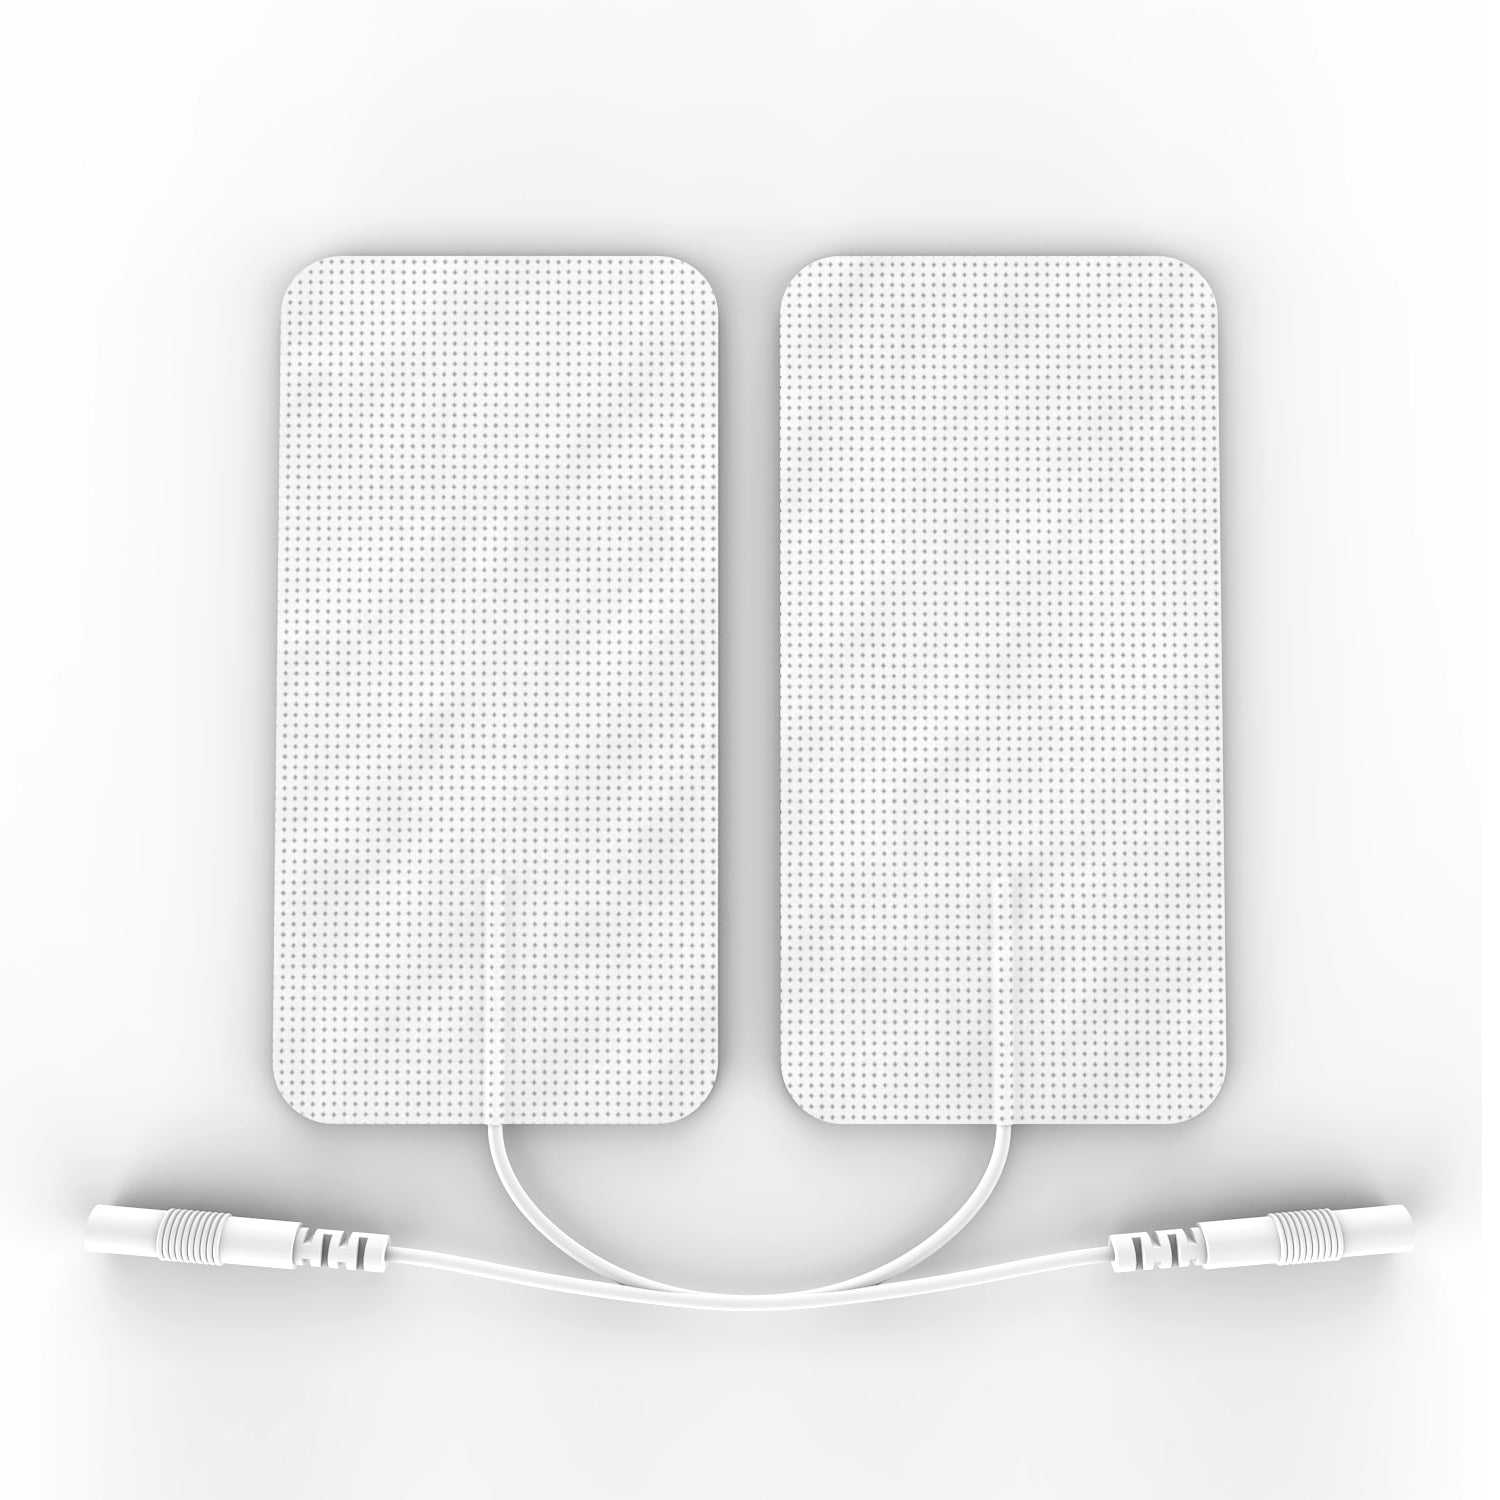 5 Pairs (10 Pcs ) White Pin-Insert Large Rectangle-Shaped Pads - HealthmateForever.com